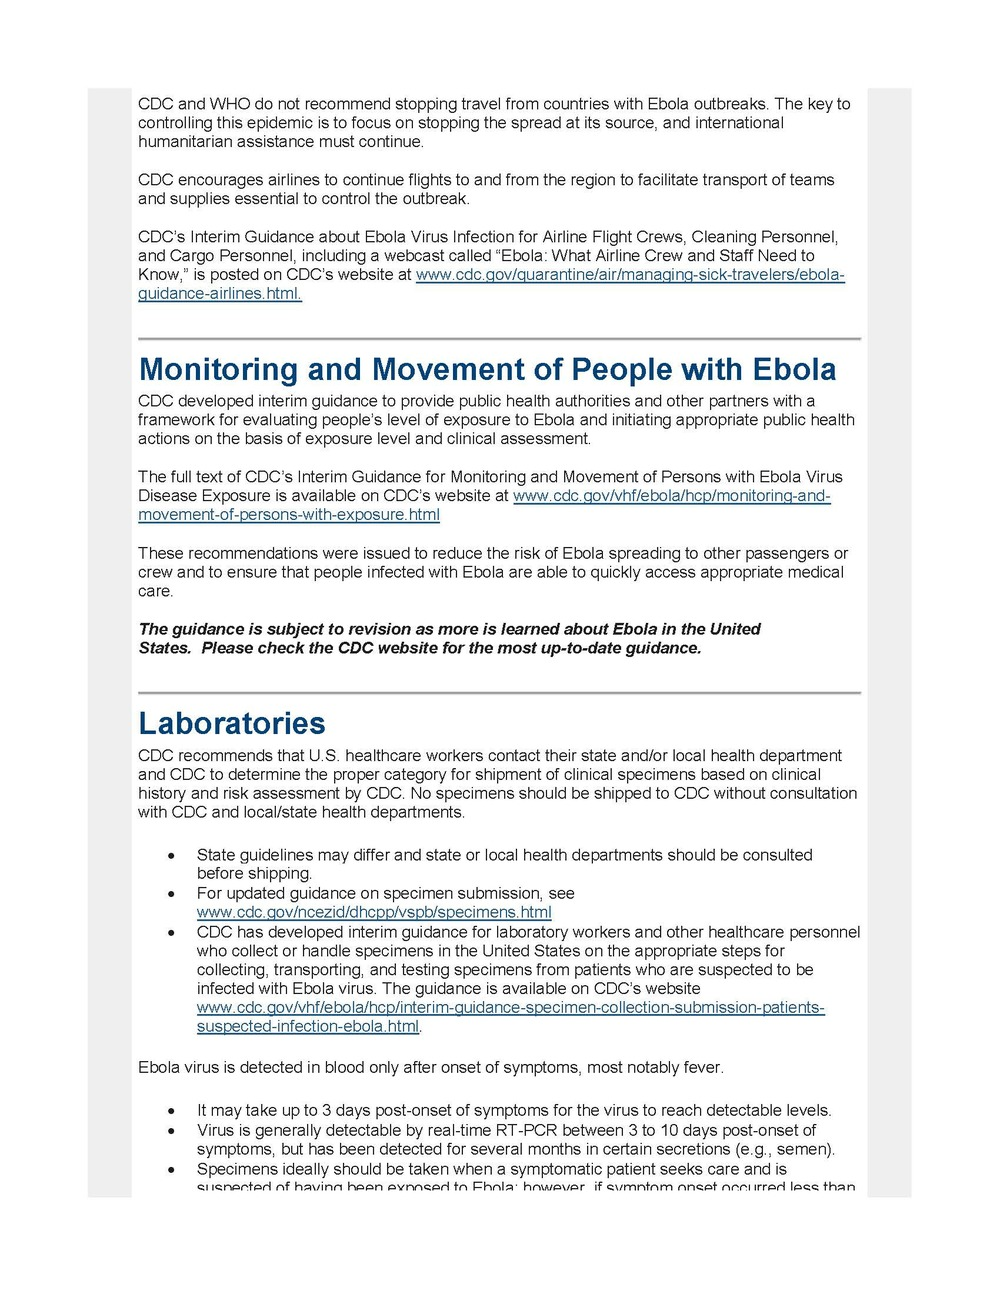 CDC Emergency Partners Update 2014 Ebola Response_Page_21.jpg